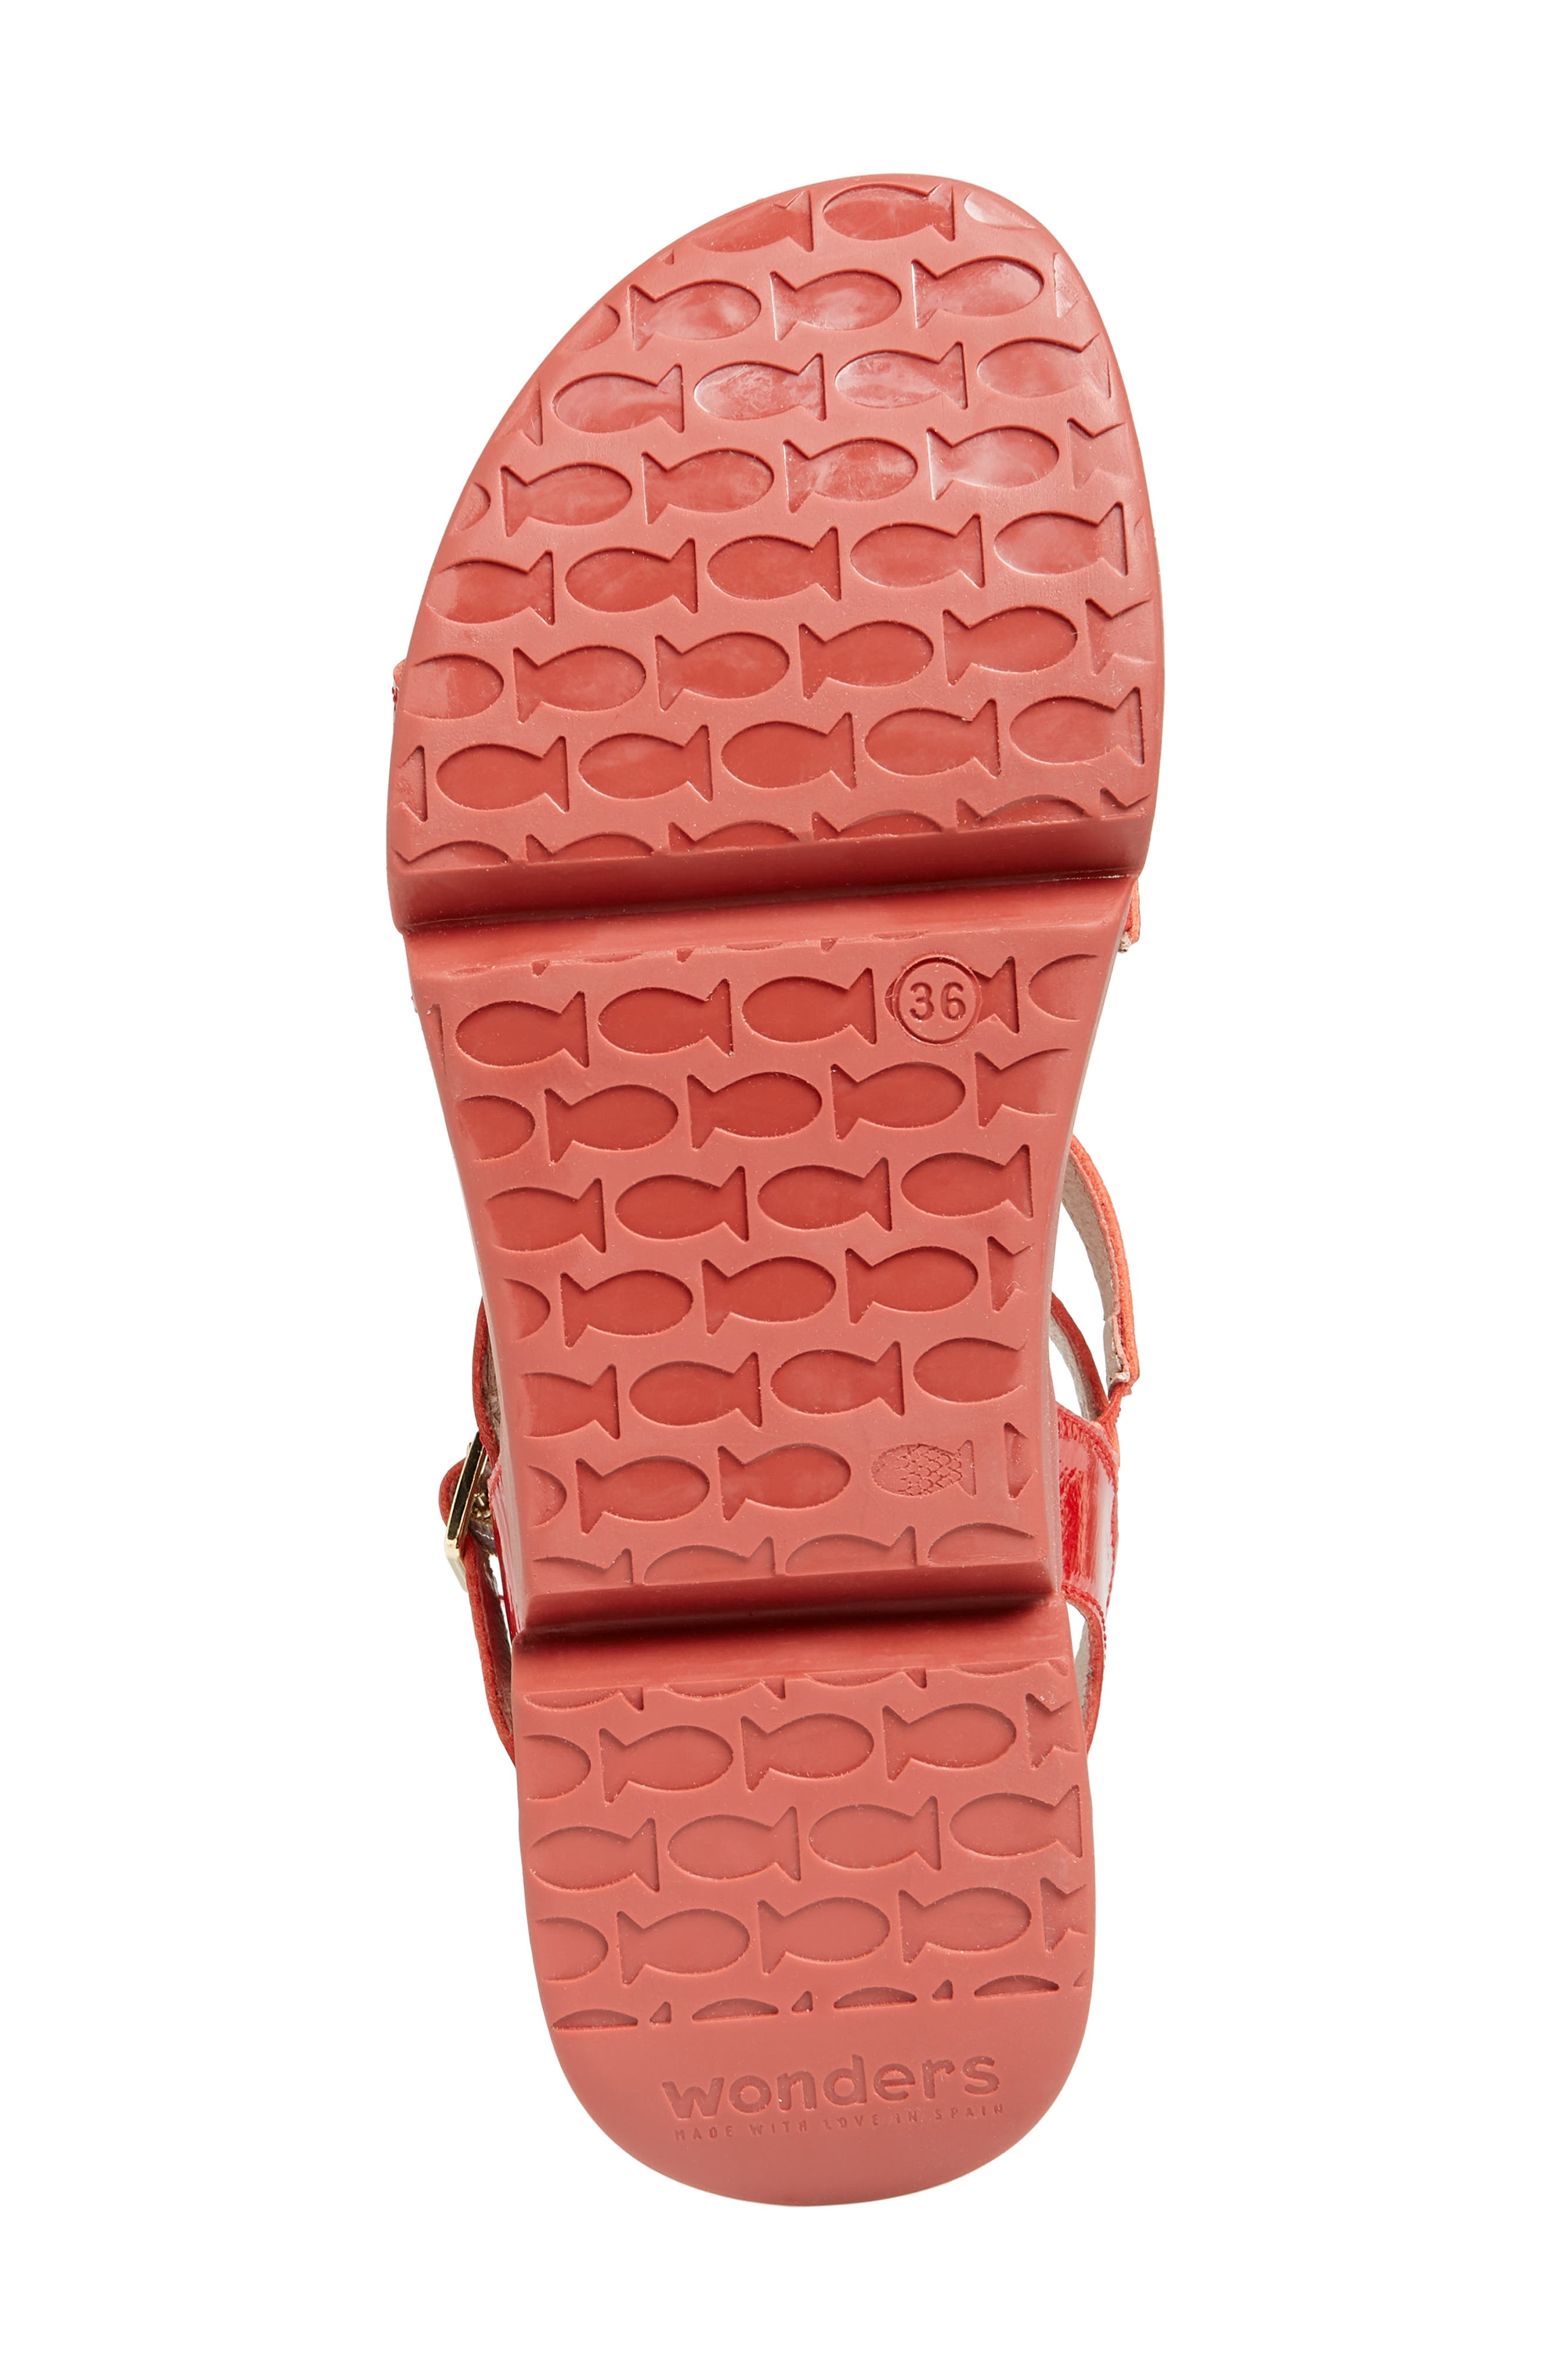 Wedge Sandal,                             Alternate thumbnail 6, color,                             Red Patent Leather